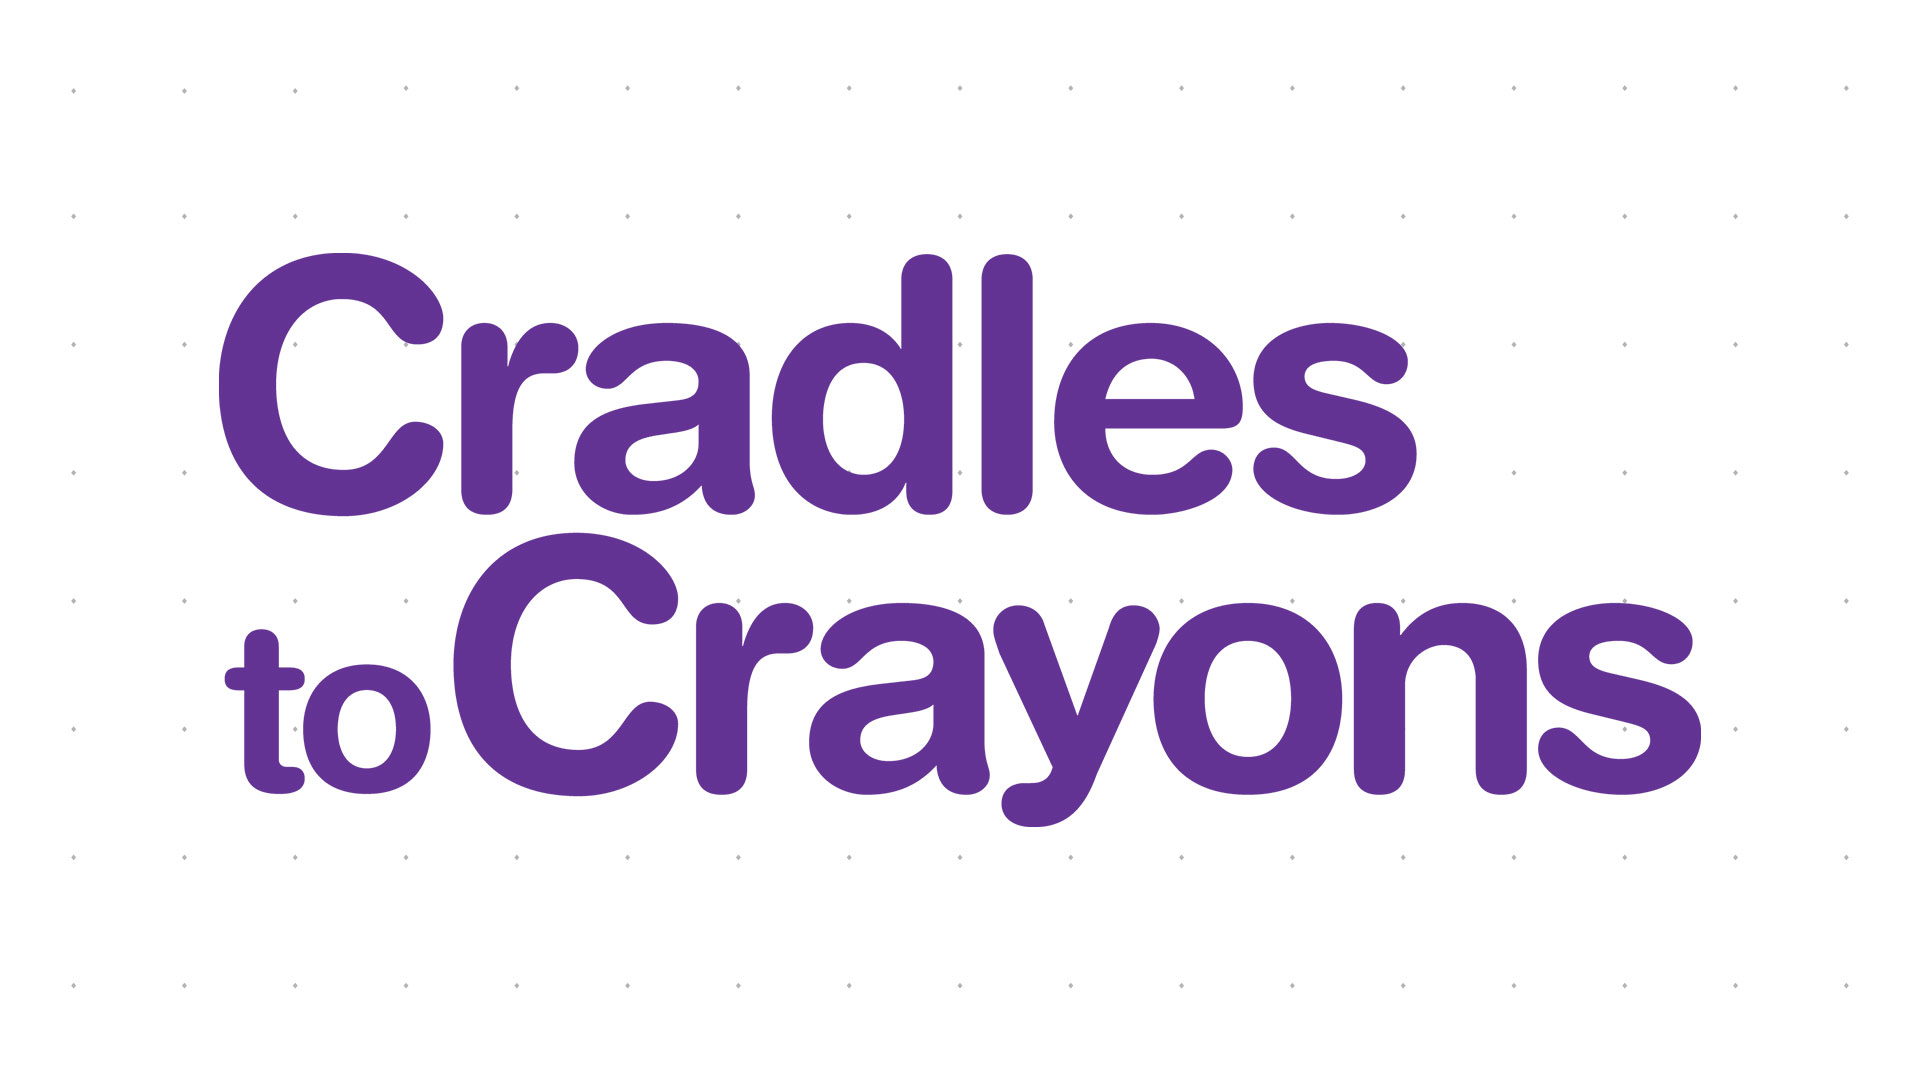 Cradles to Crayons